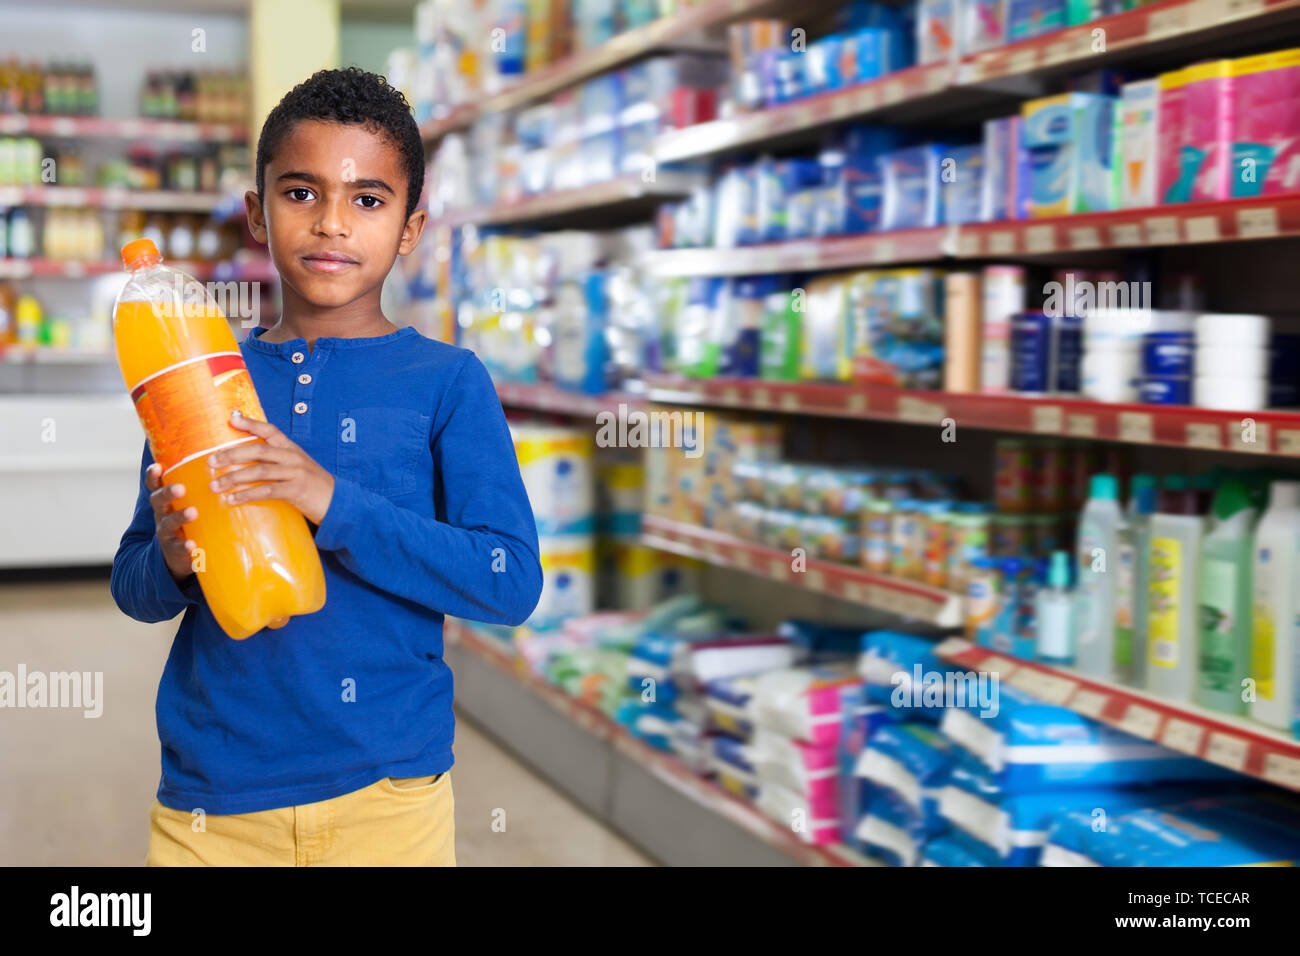 Cute African American preteen boy standing with bottles of soda drinks in supermarket - Stock Image